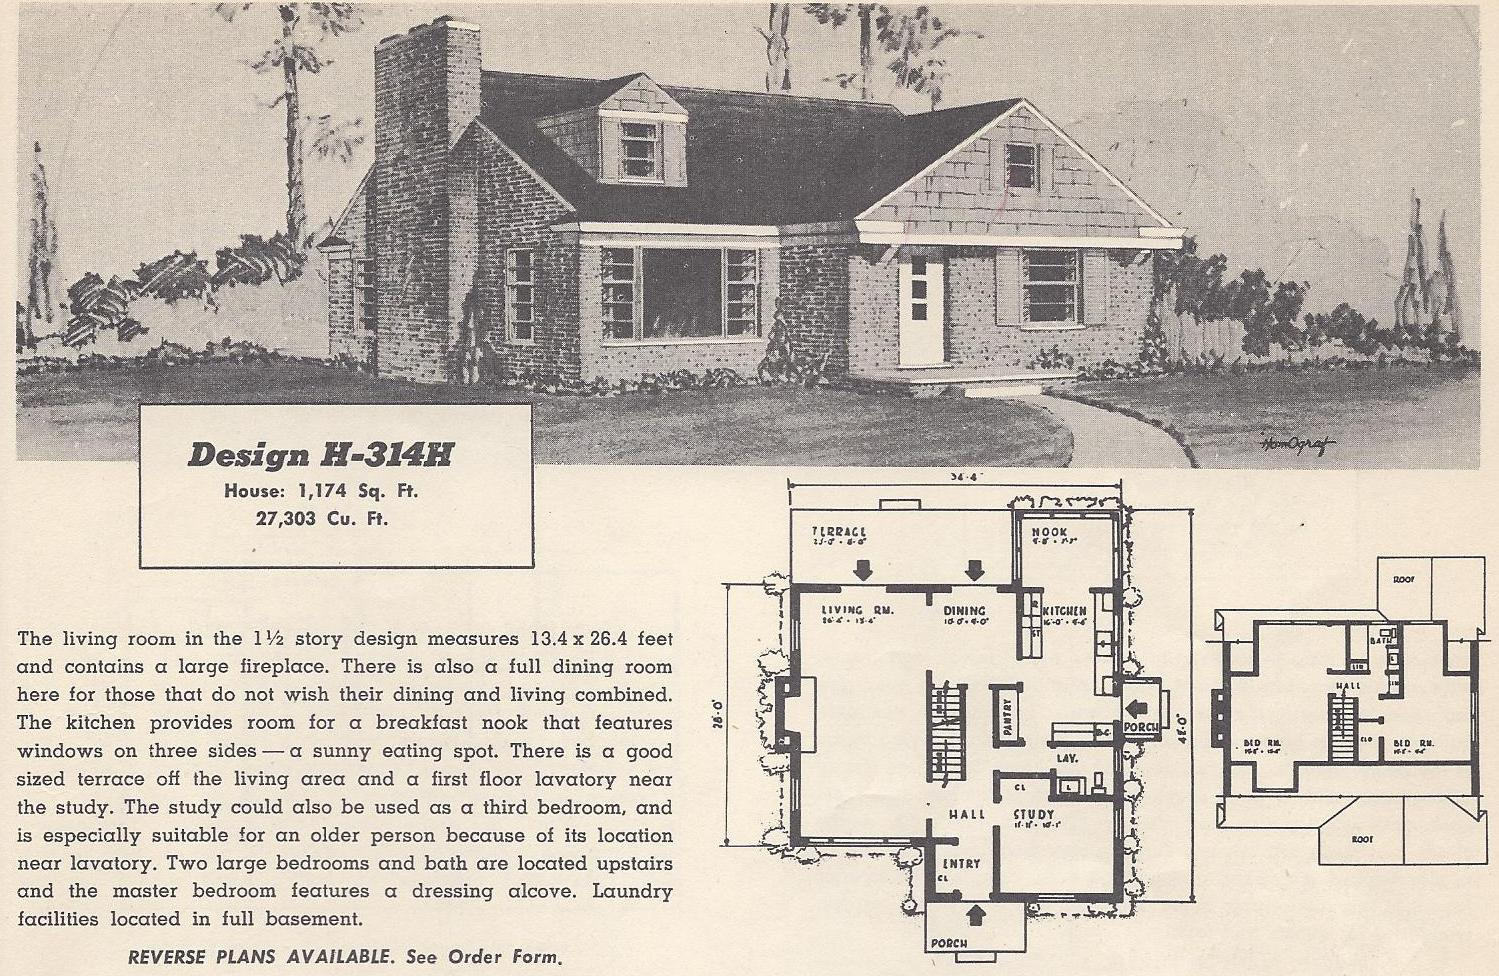 Vintage house plans 314h antique alter ego - Retro home design ...